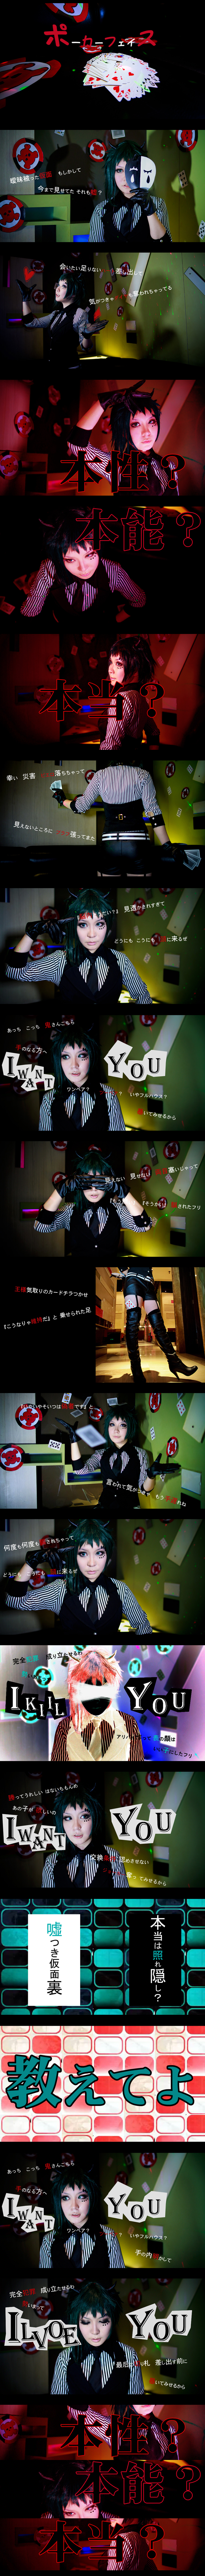 GUMI POKER FACE by shuichimeryl